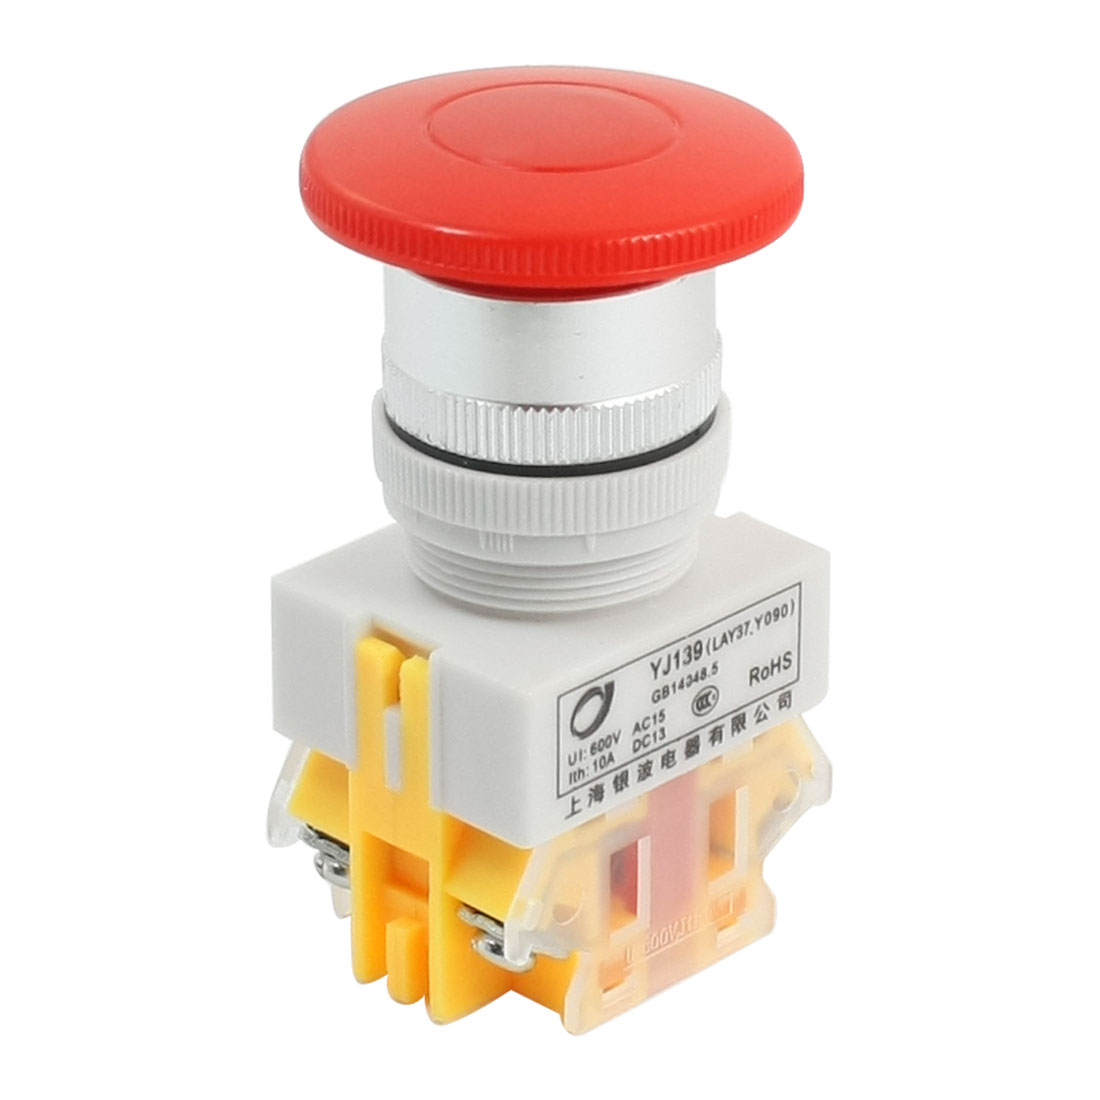 DPST 24mm Mount Momentary Red Mushroom Push Button Switch 600VAC 10A